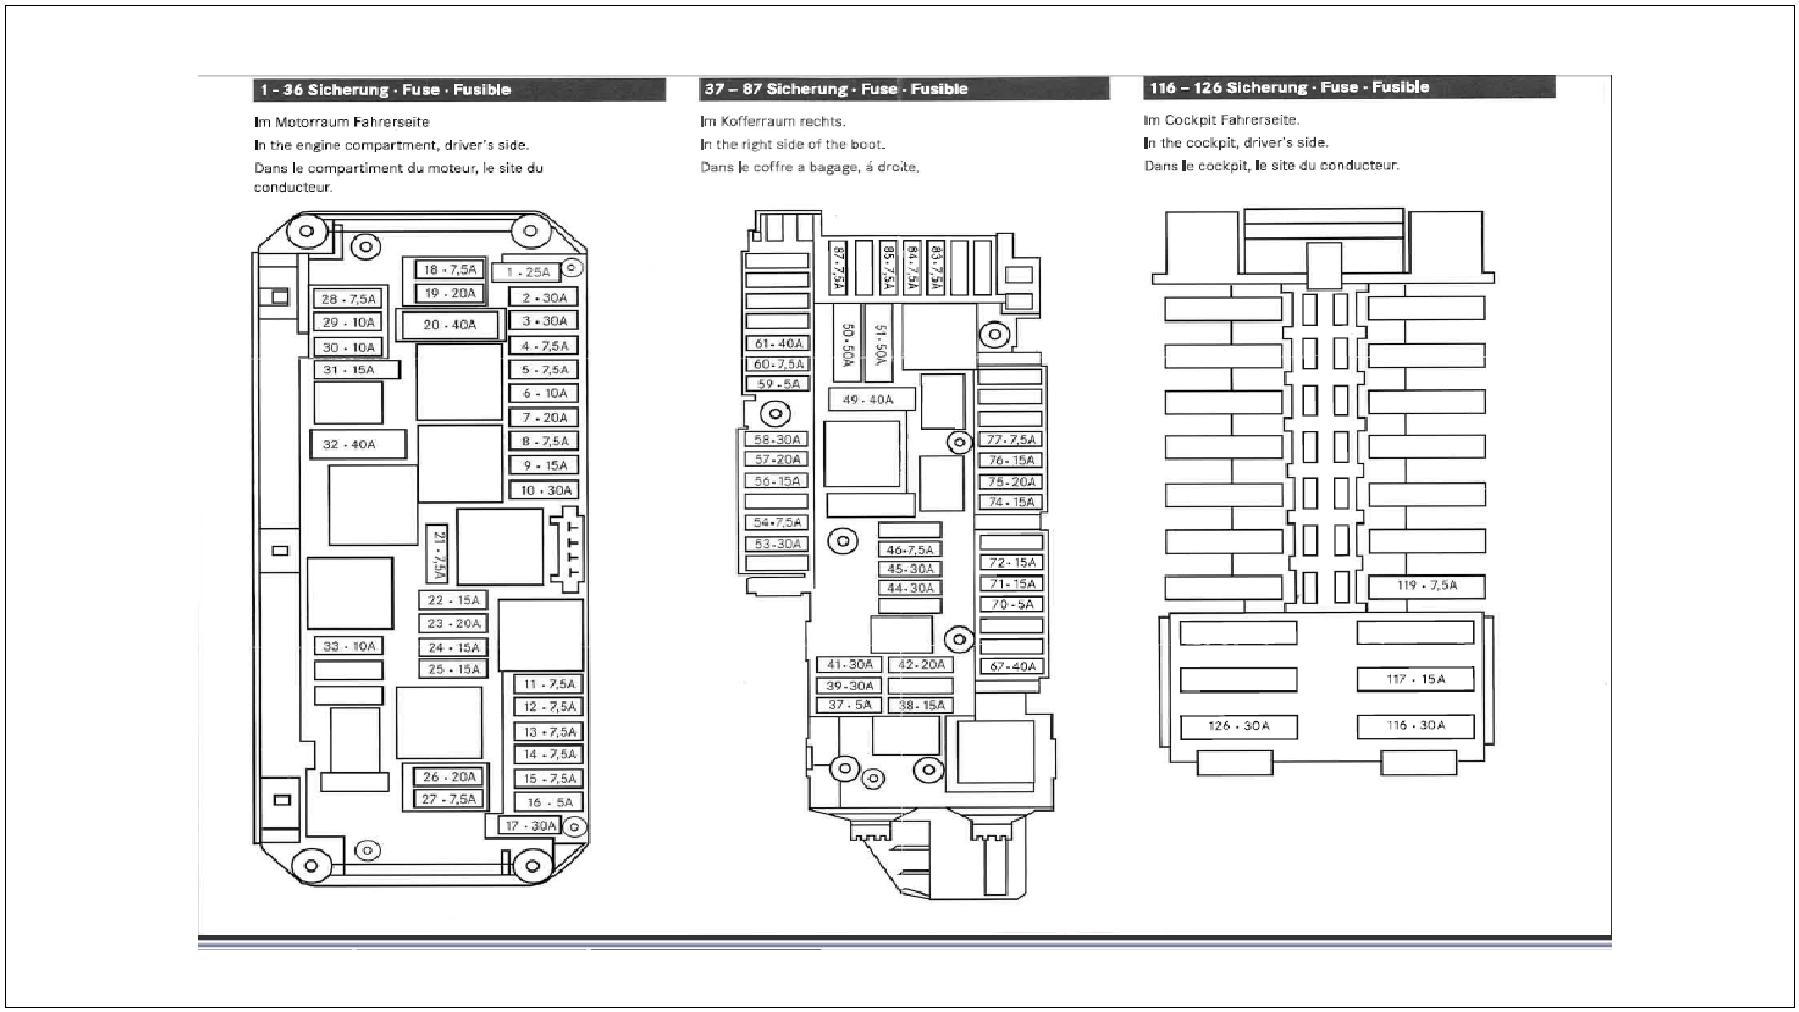 2002 c240 fuse diagram wiring diagram schematics 2003 mercedes s500 fuse diagram  mercedes benz 2009 c300